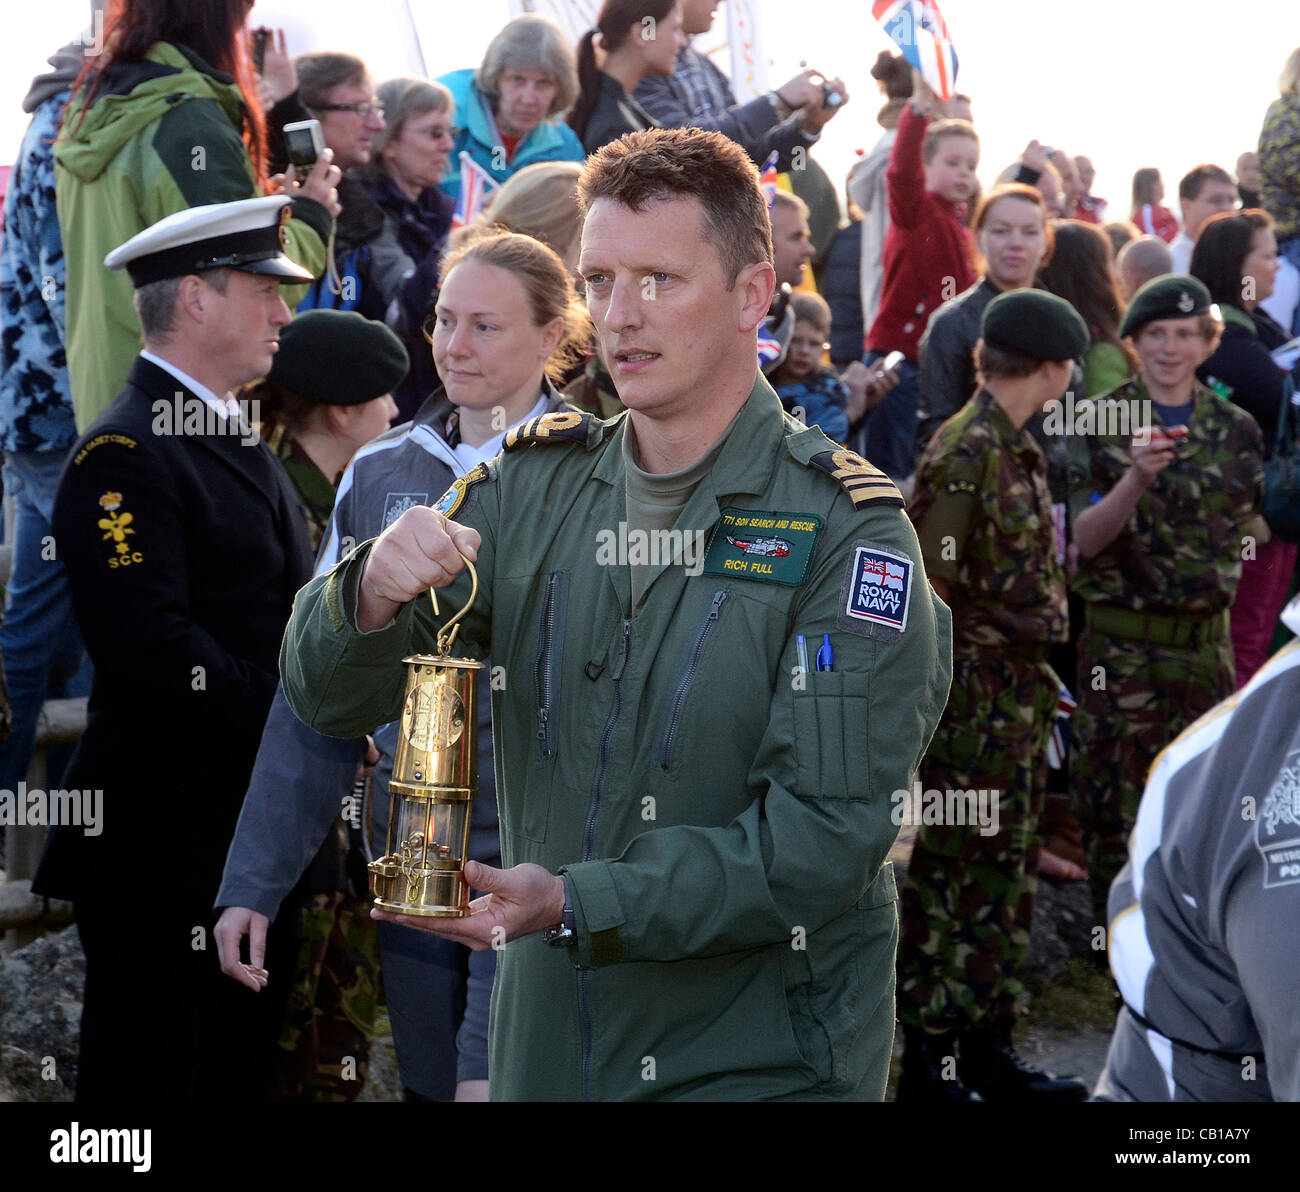 The Olympic Flame arrives at Lands End for the start of the Relay in the safe hands of the Royal Navy Search and - Stock Image